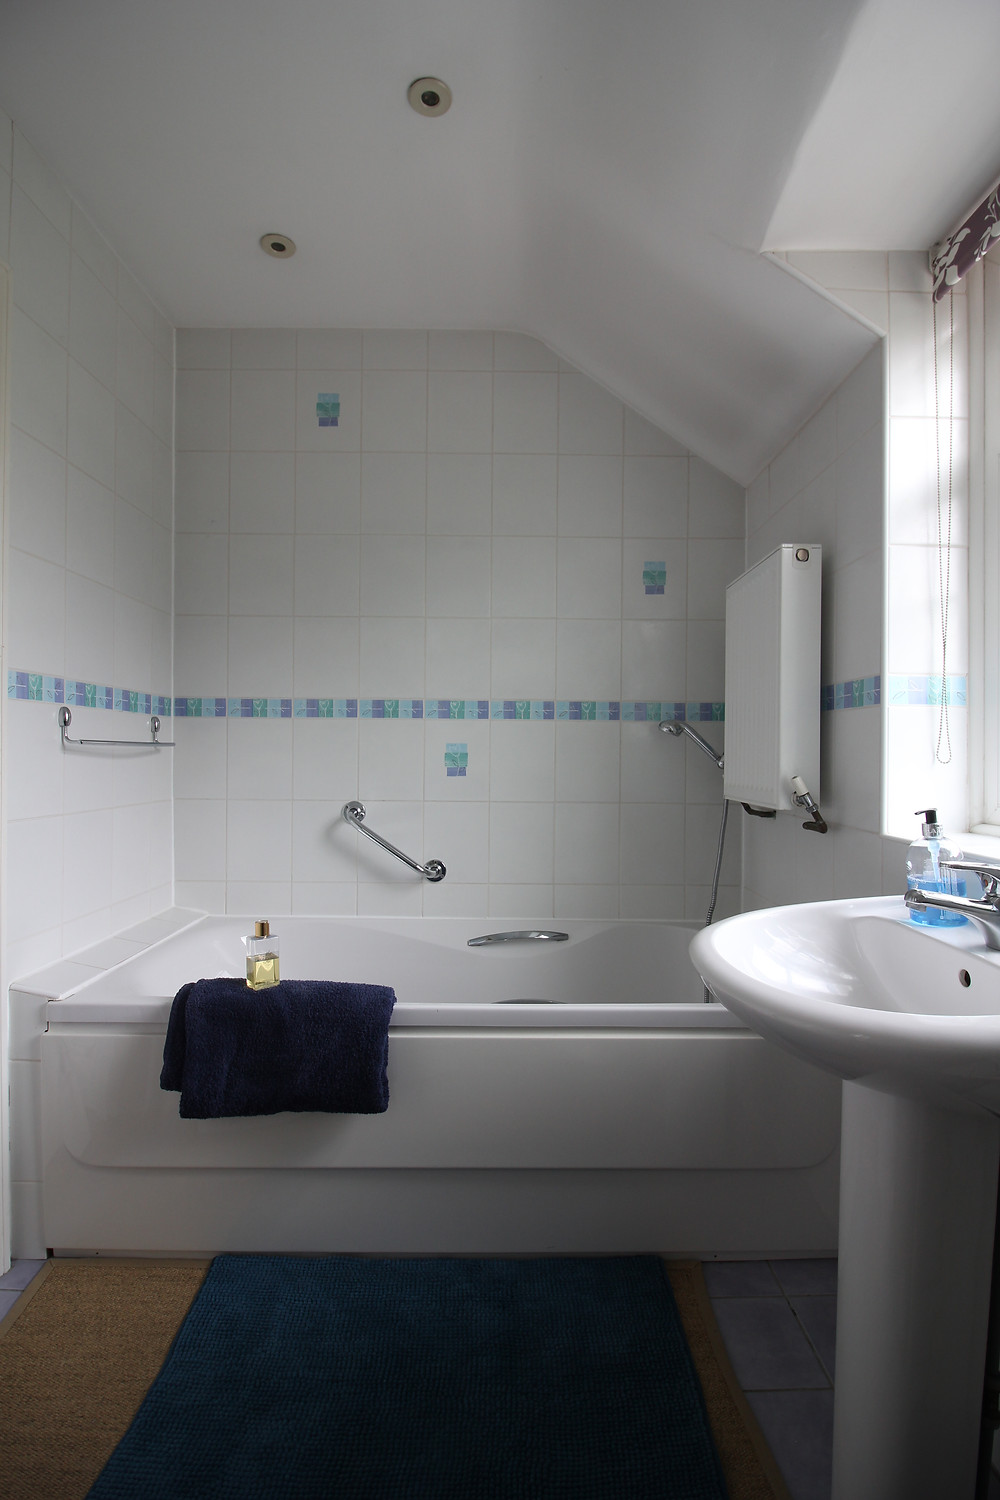 seasonsincolour bathroom makeover, a bathroom with square white tiles and blue border, chrome towel rail and a single ended bathtub.